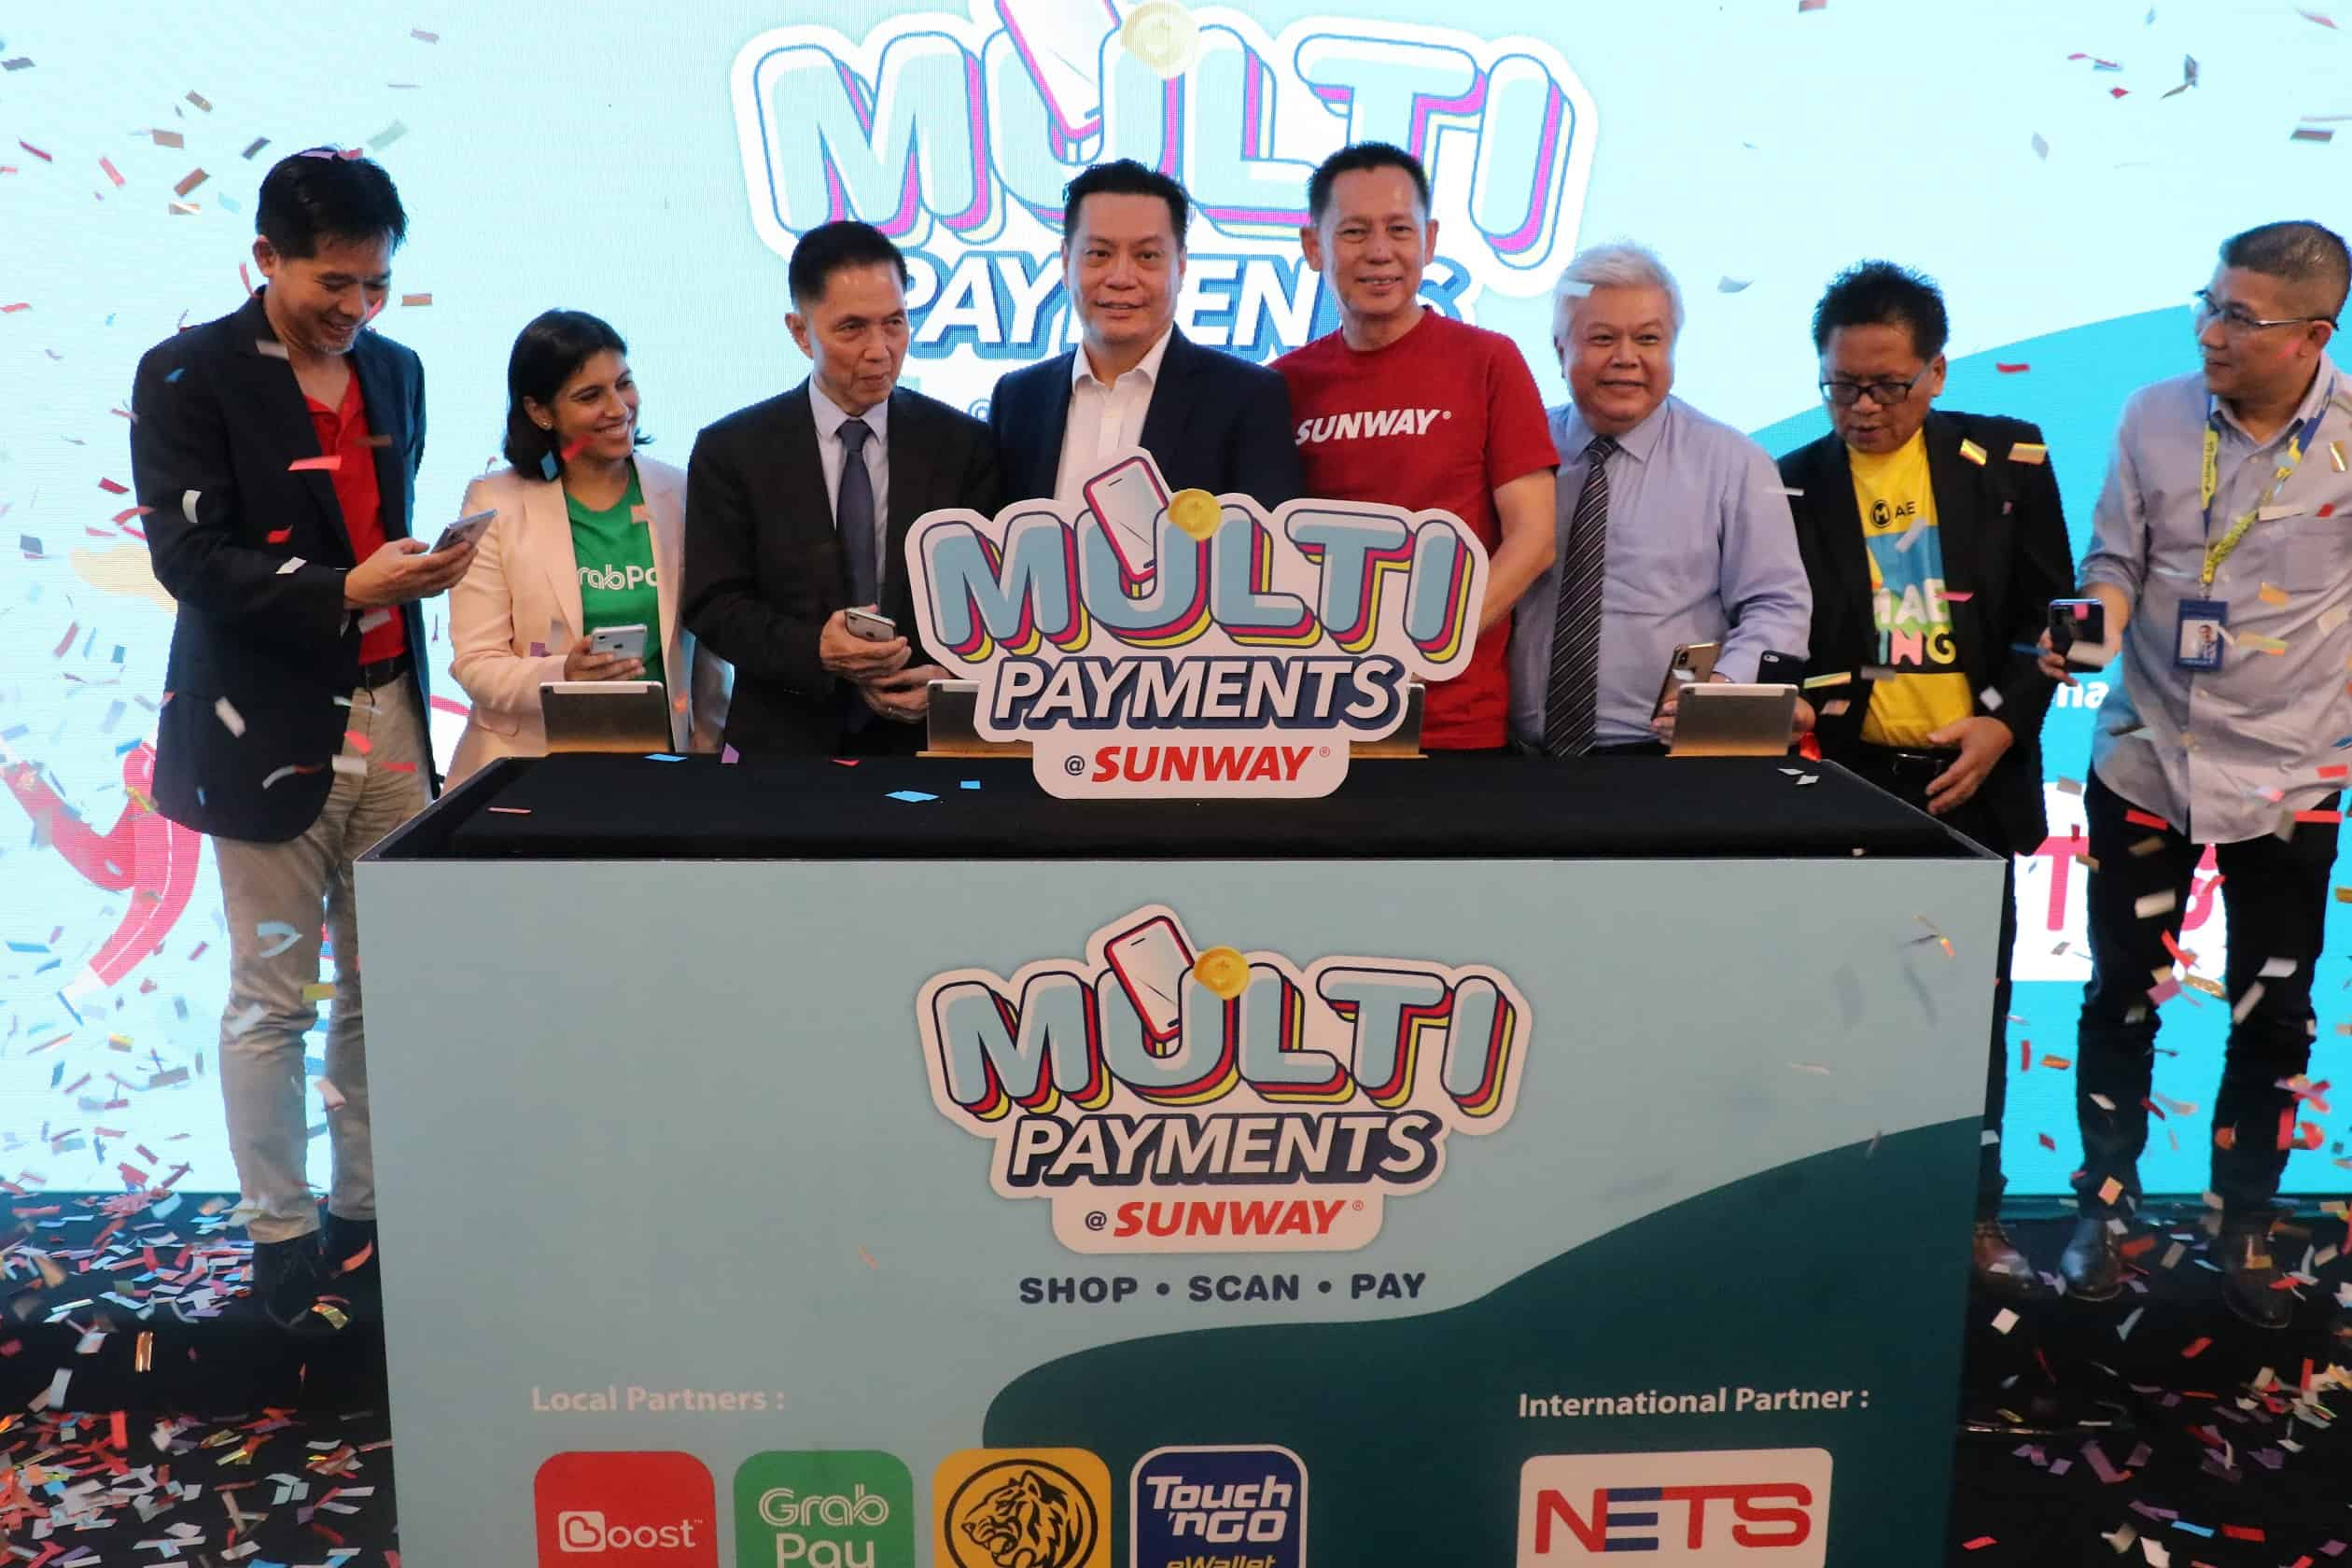 Sunway Malls Introduces Unified Payment Terminal To Facilitate Multiple Cashless Payments